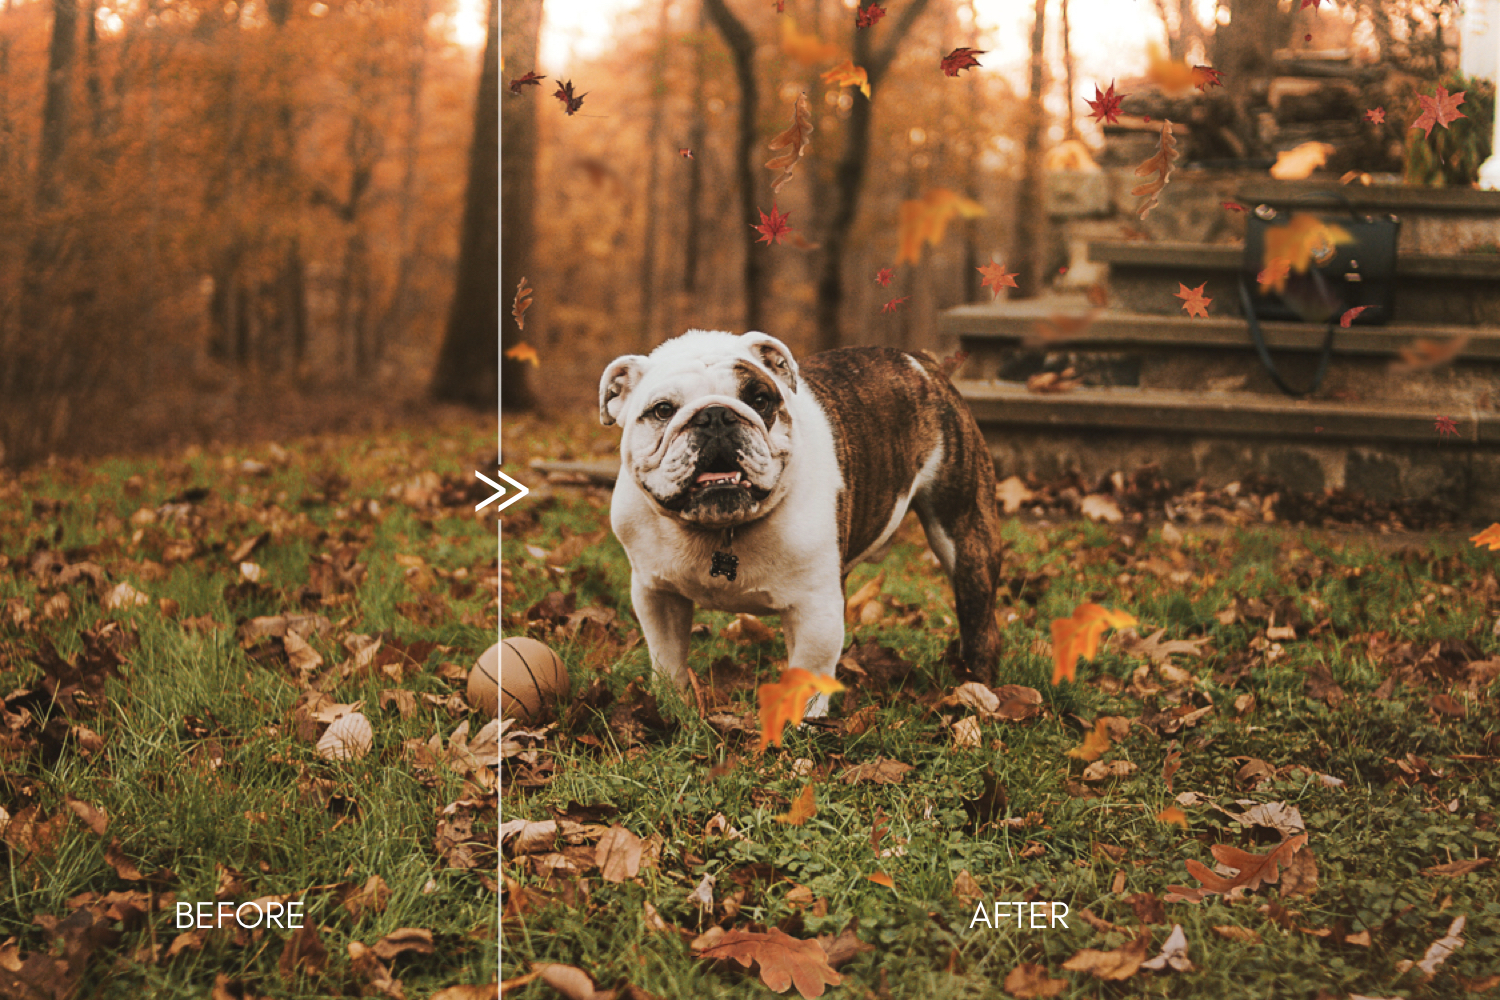 70 Natural Falling Autumn Leaves Photoshop Overlays - autumn falling leaves photoshop photography overlays 7 -